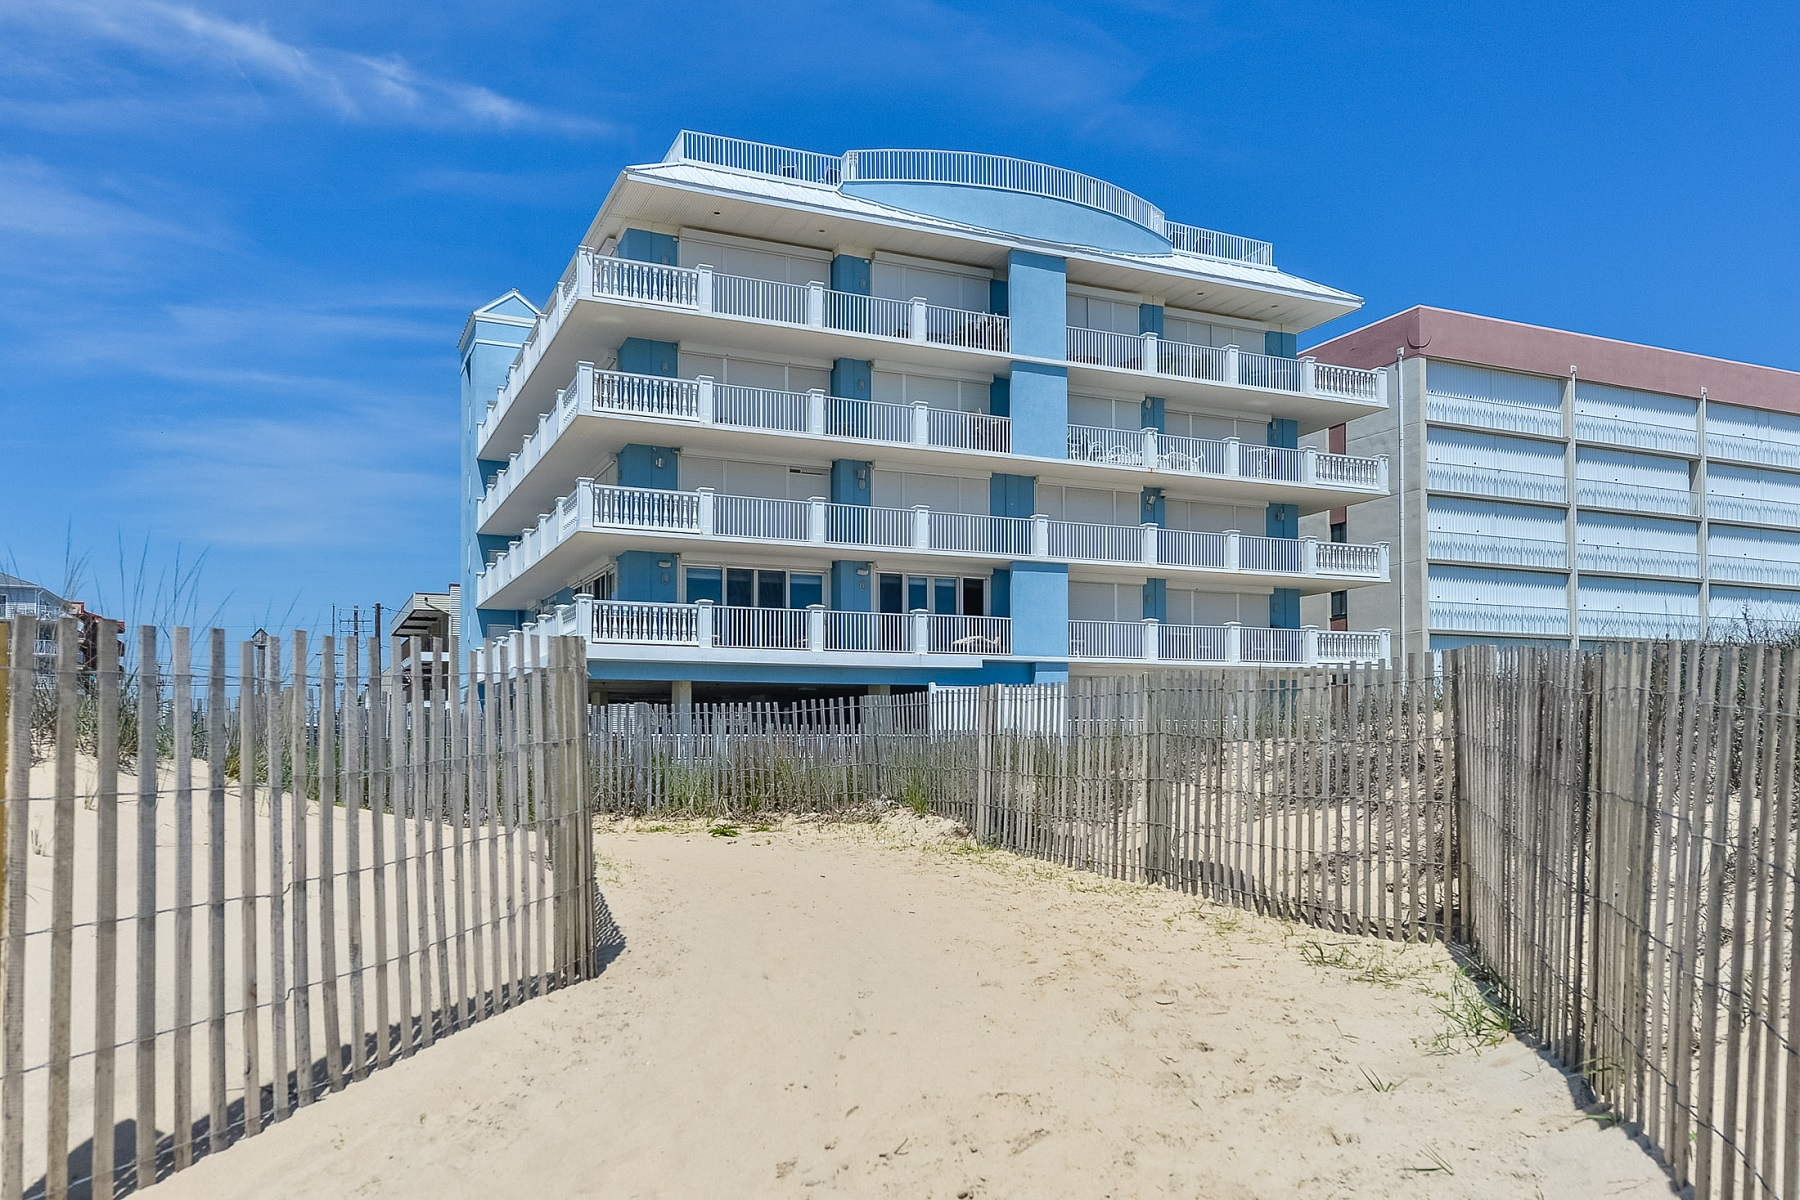 Condominium for Sale at Seaside Plantation 12201 Wight Street, Unit 202, Ocean City, Maryland 21842 United States